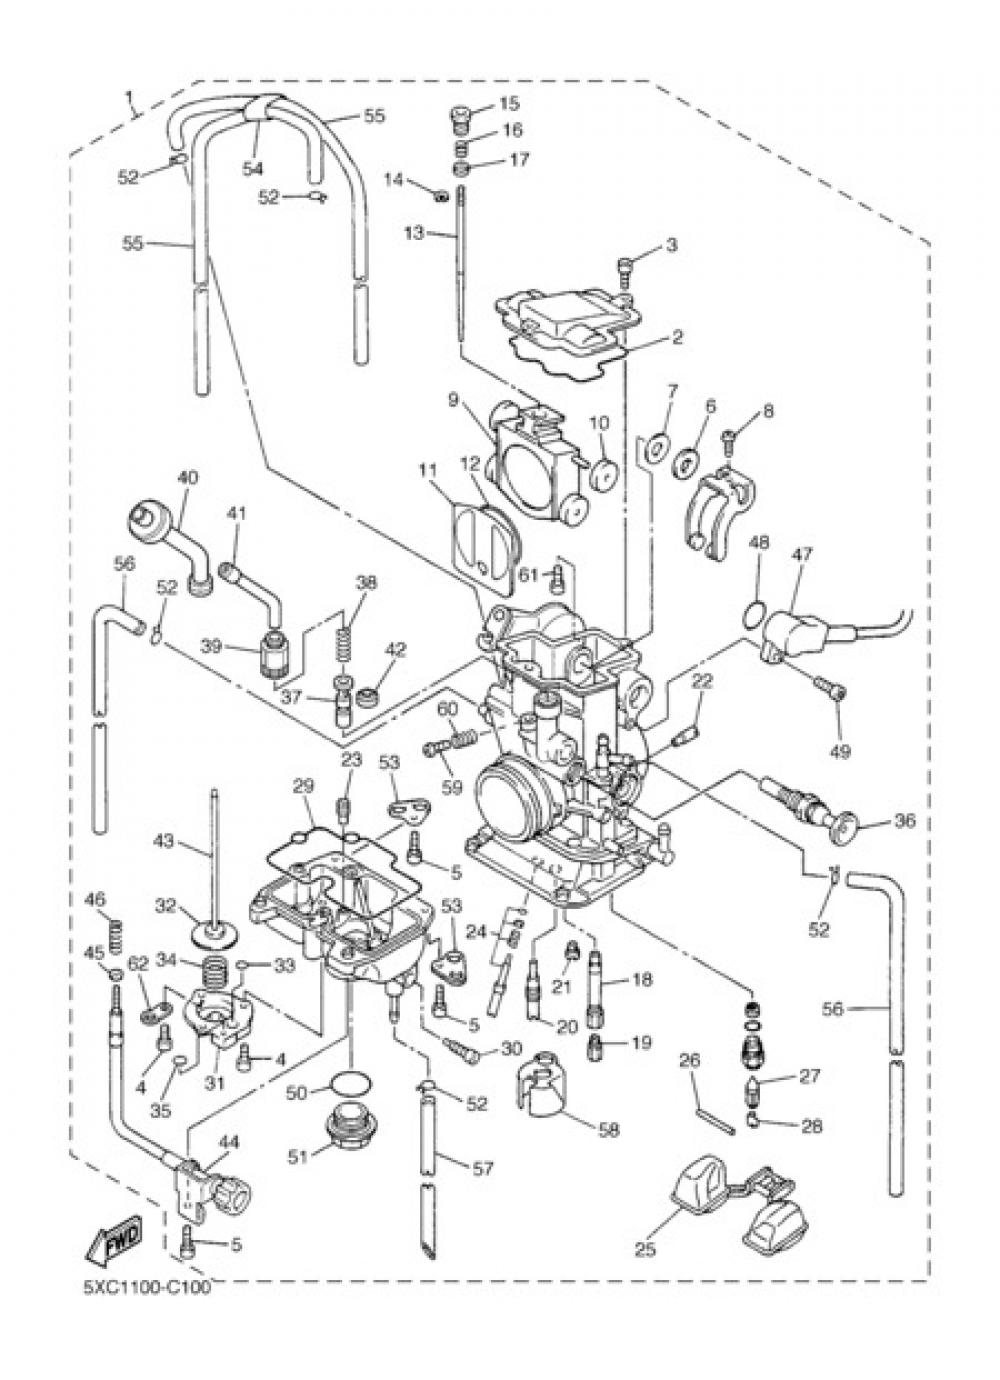 05 yz250f engine diagram wiring library Static Phase Converter Wiring Diagram carburetor yamaha yz250f 2005